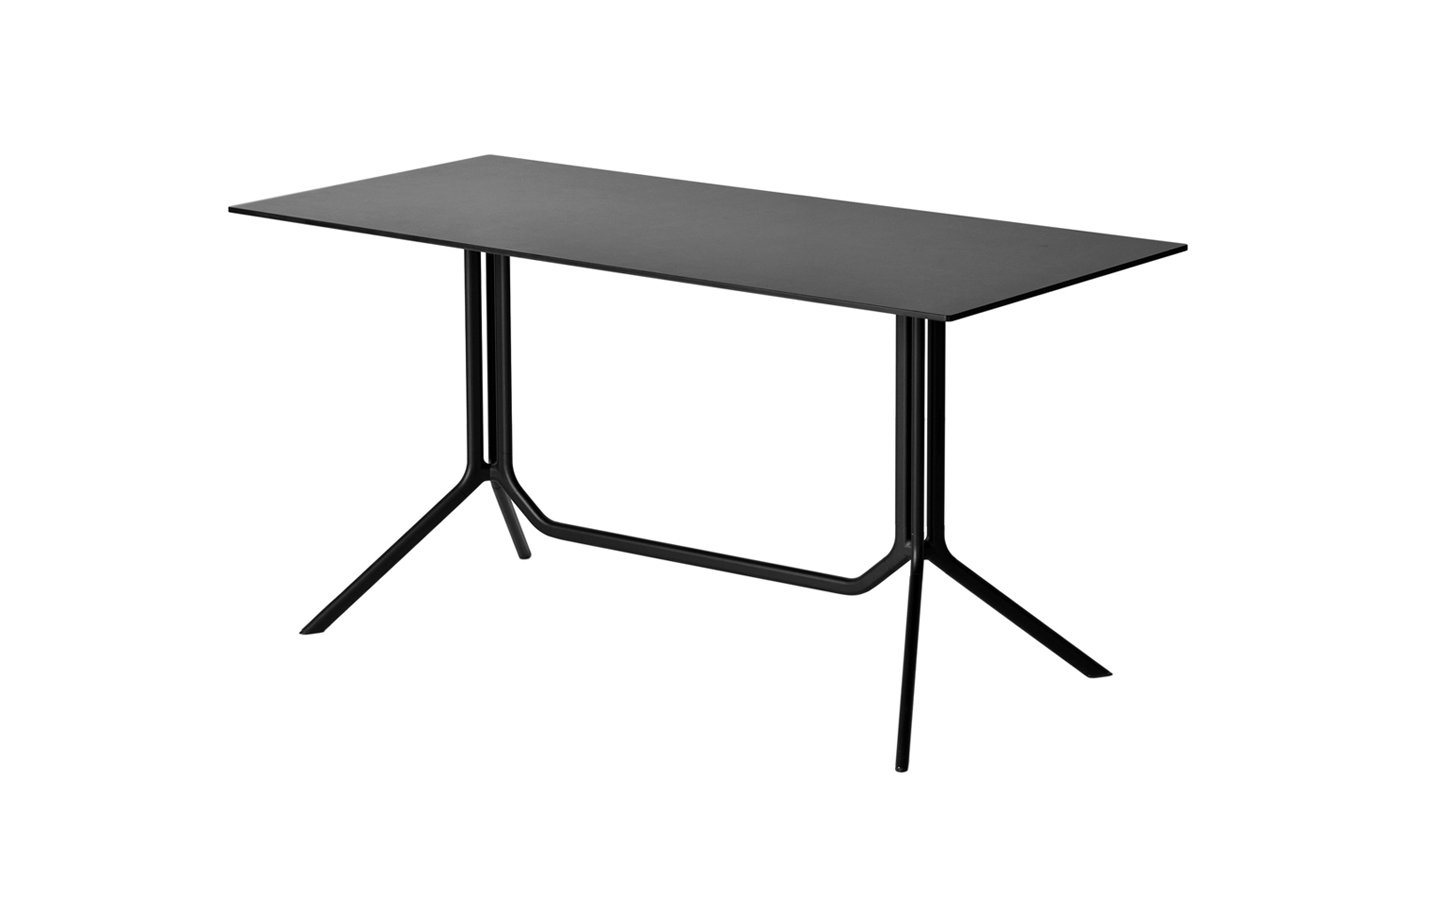 Poule table – rectangle – black